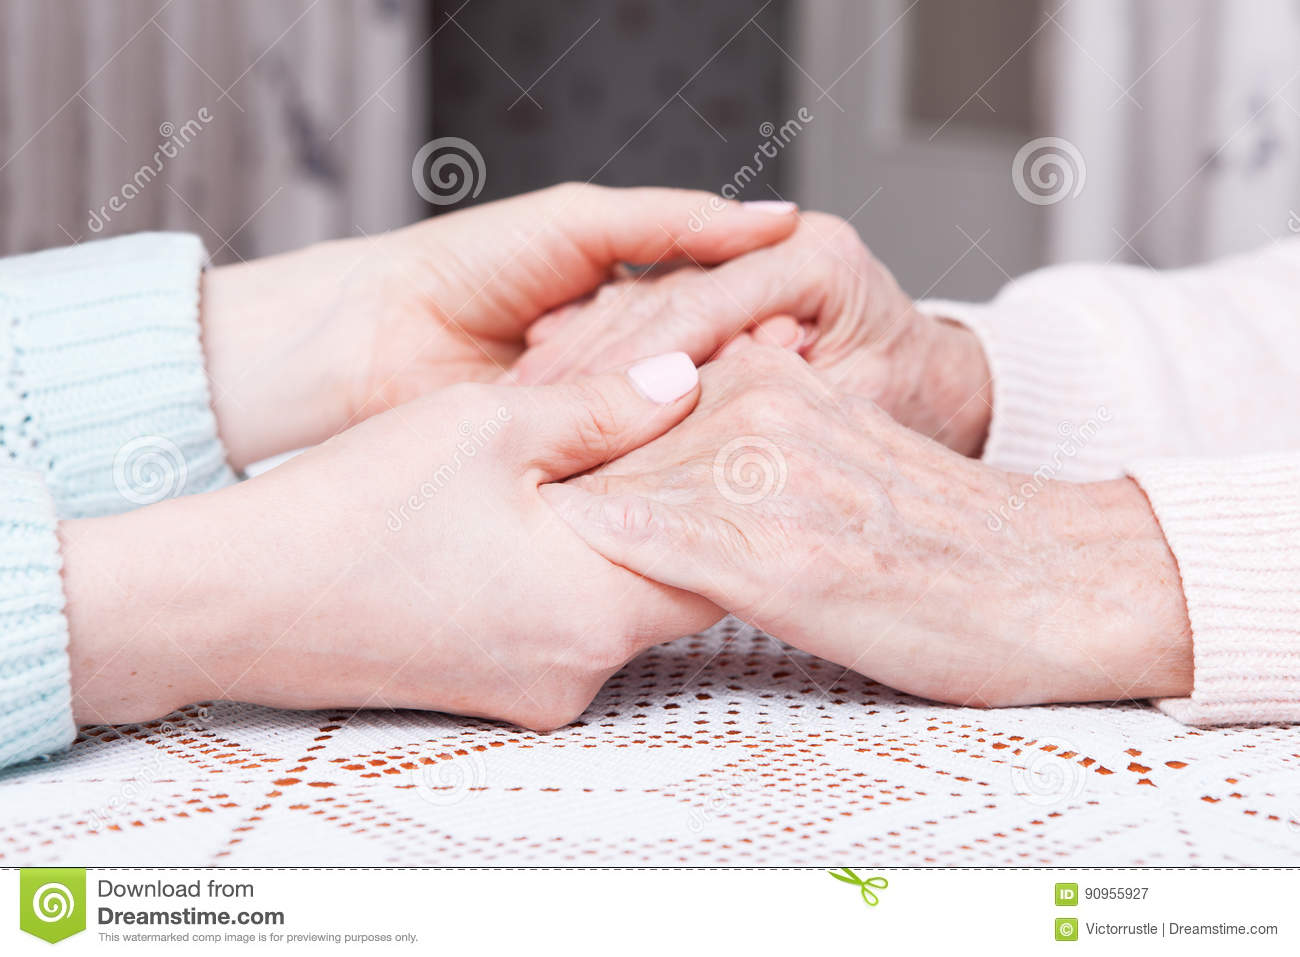 Care is at home of elderly. Space for text. Senior woman with their caregiver at home. Concept of health care for